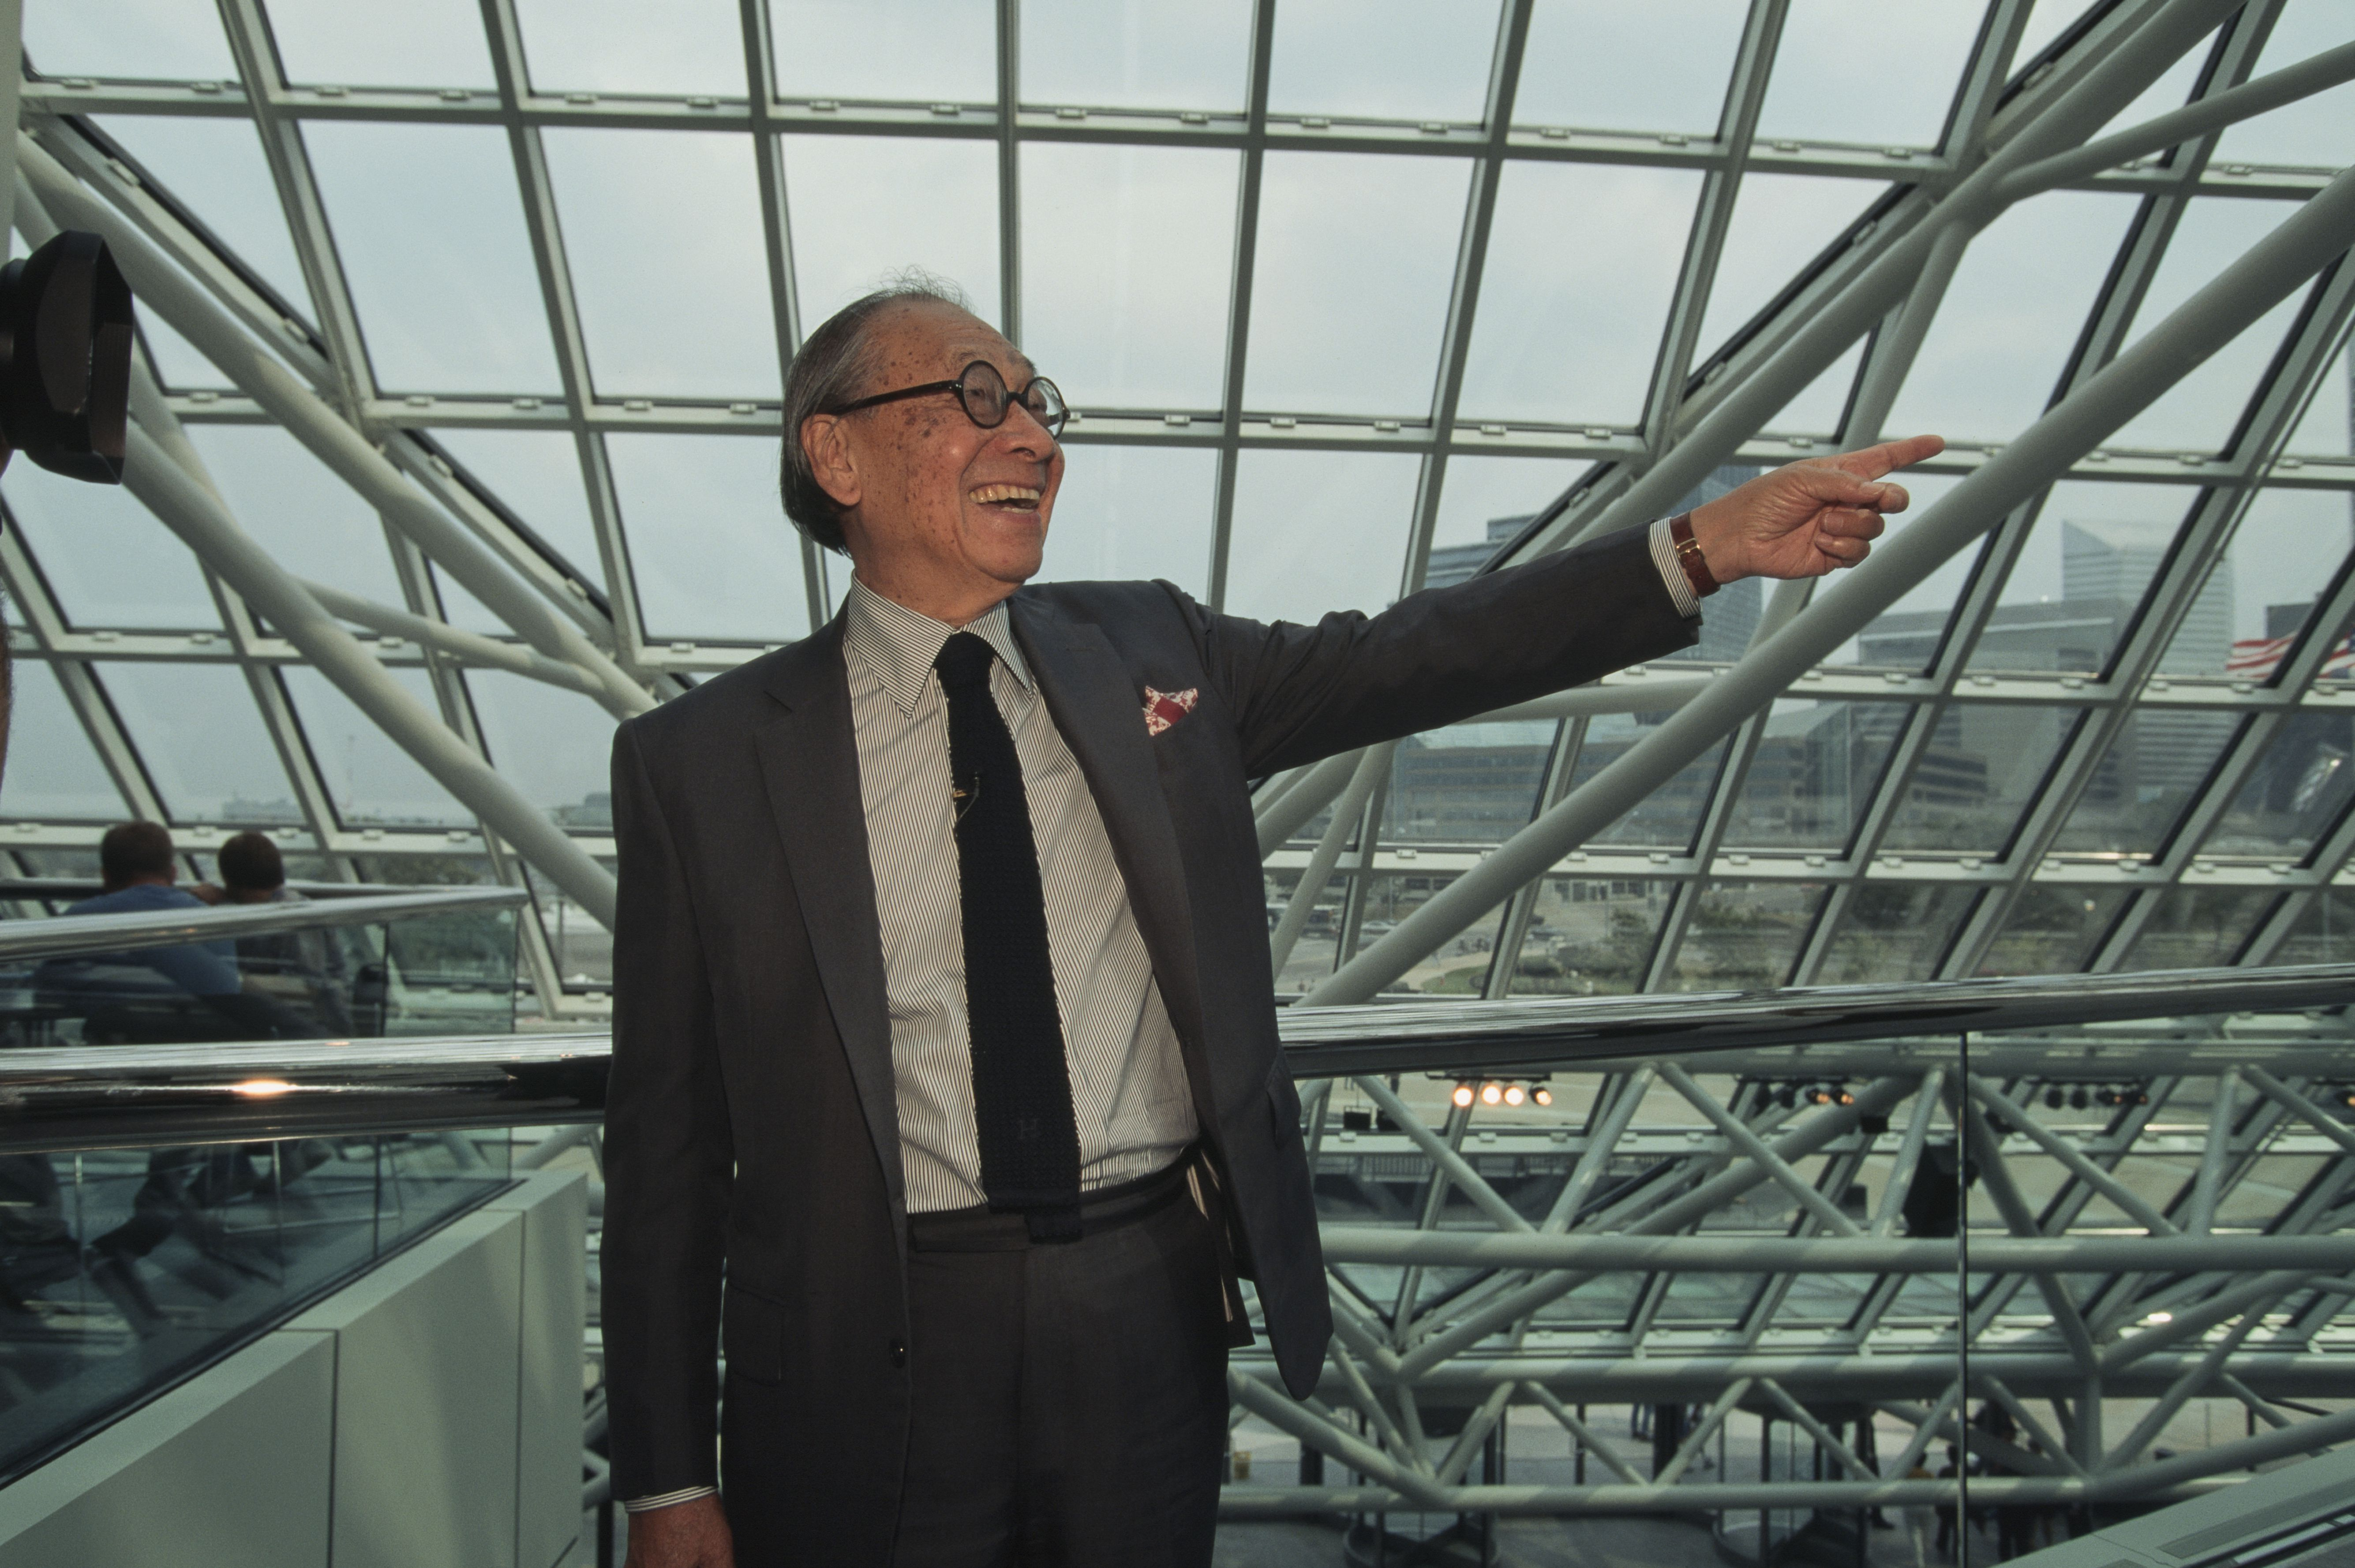 Chinese man in glasses, wearing a suit, laughing and gesturing inside a glass and steel structure